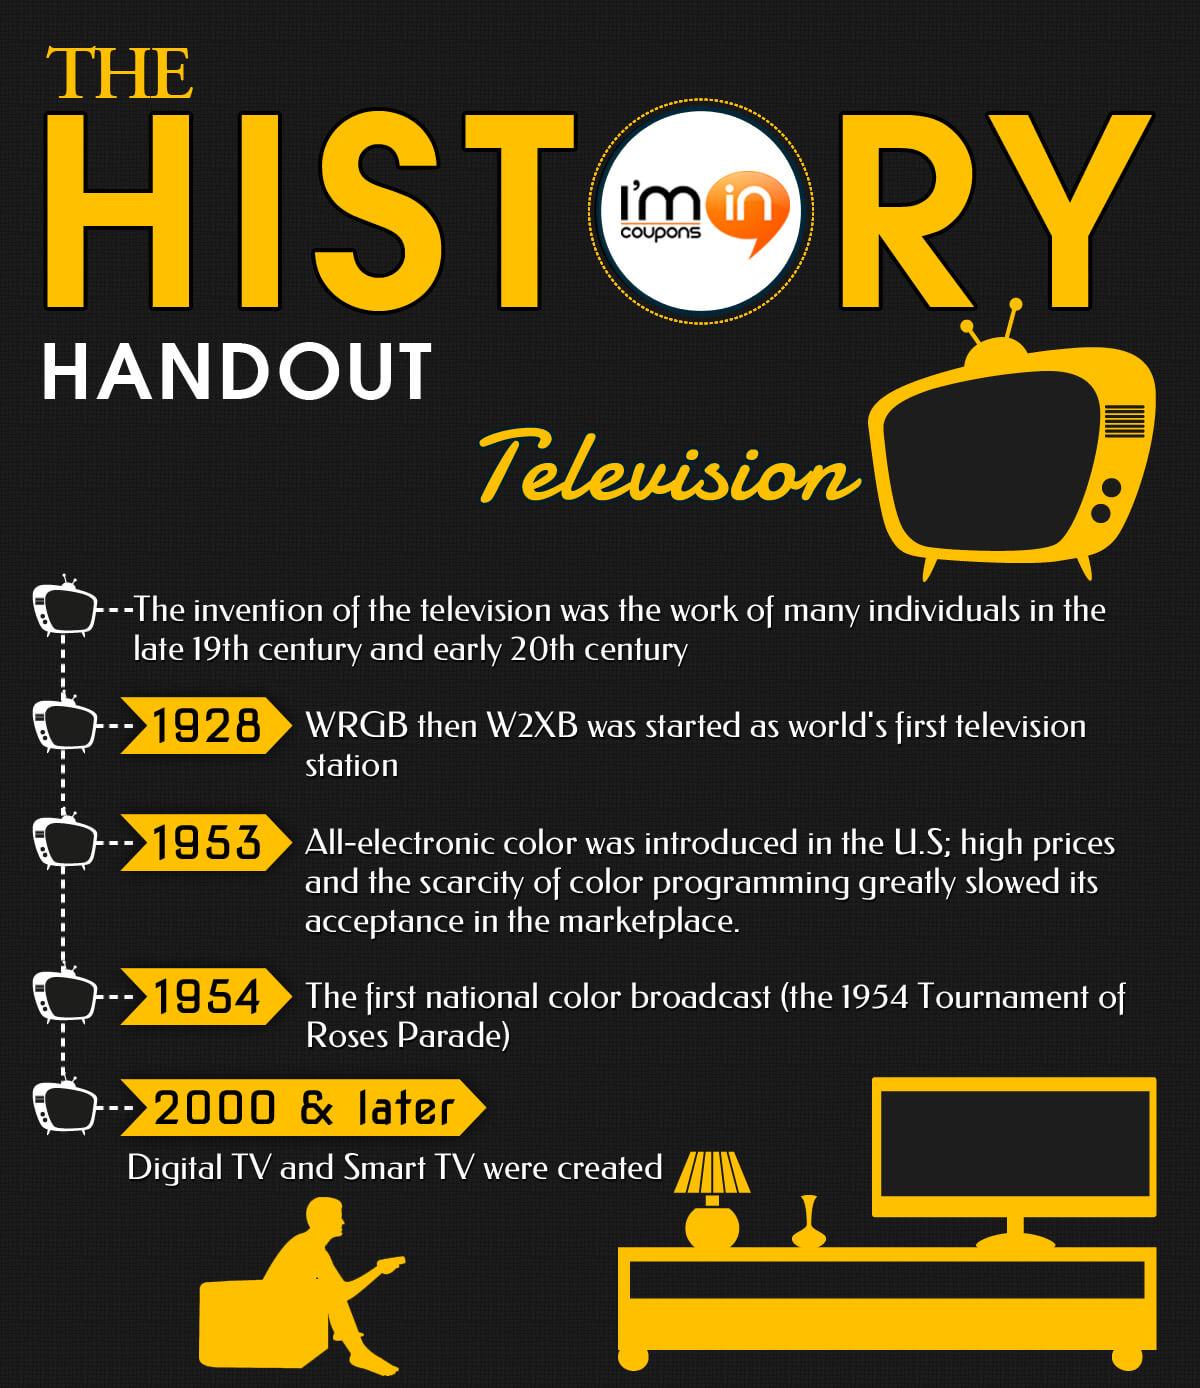 The History Handout - Television   Visual ly